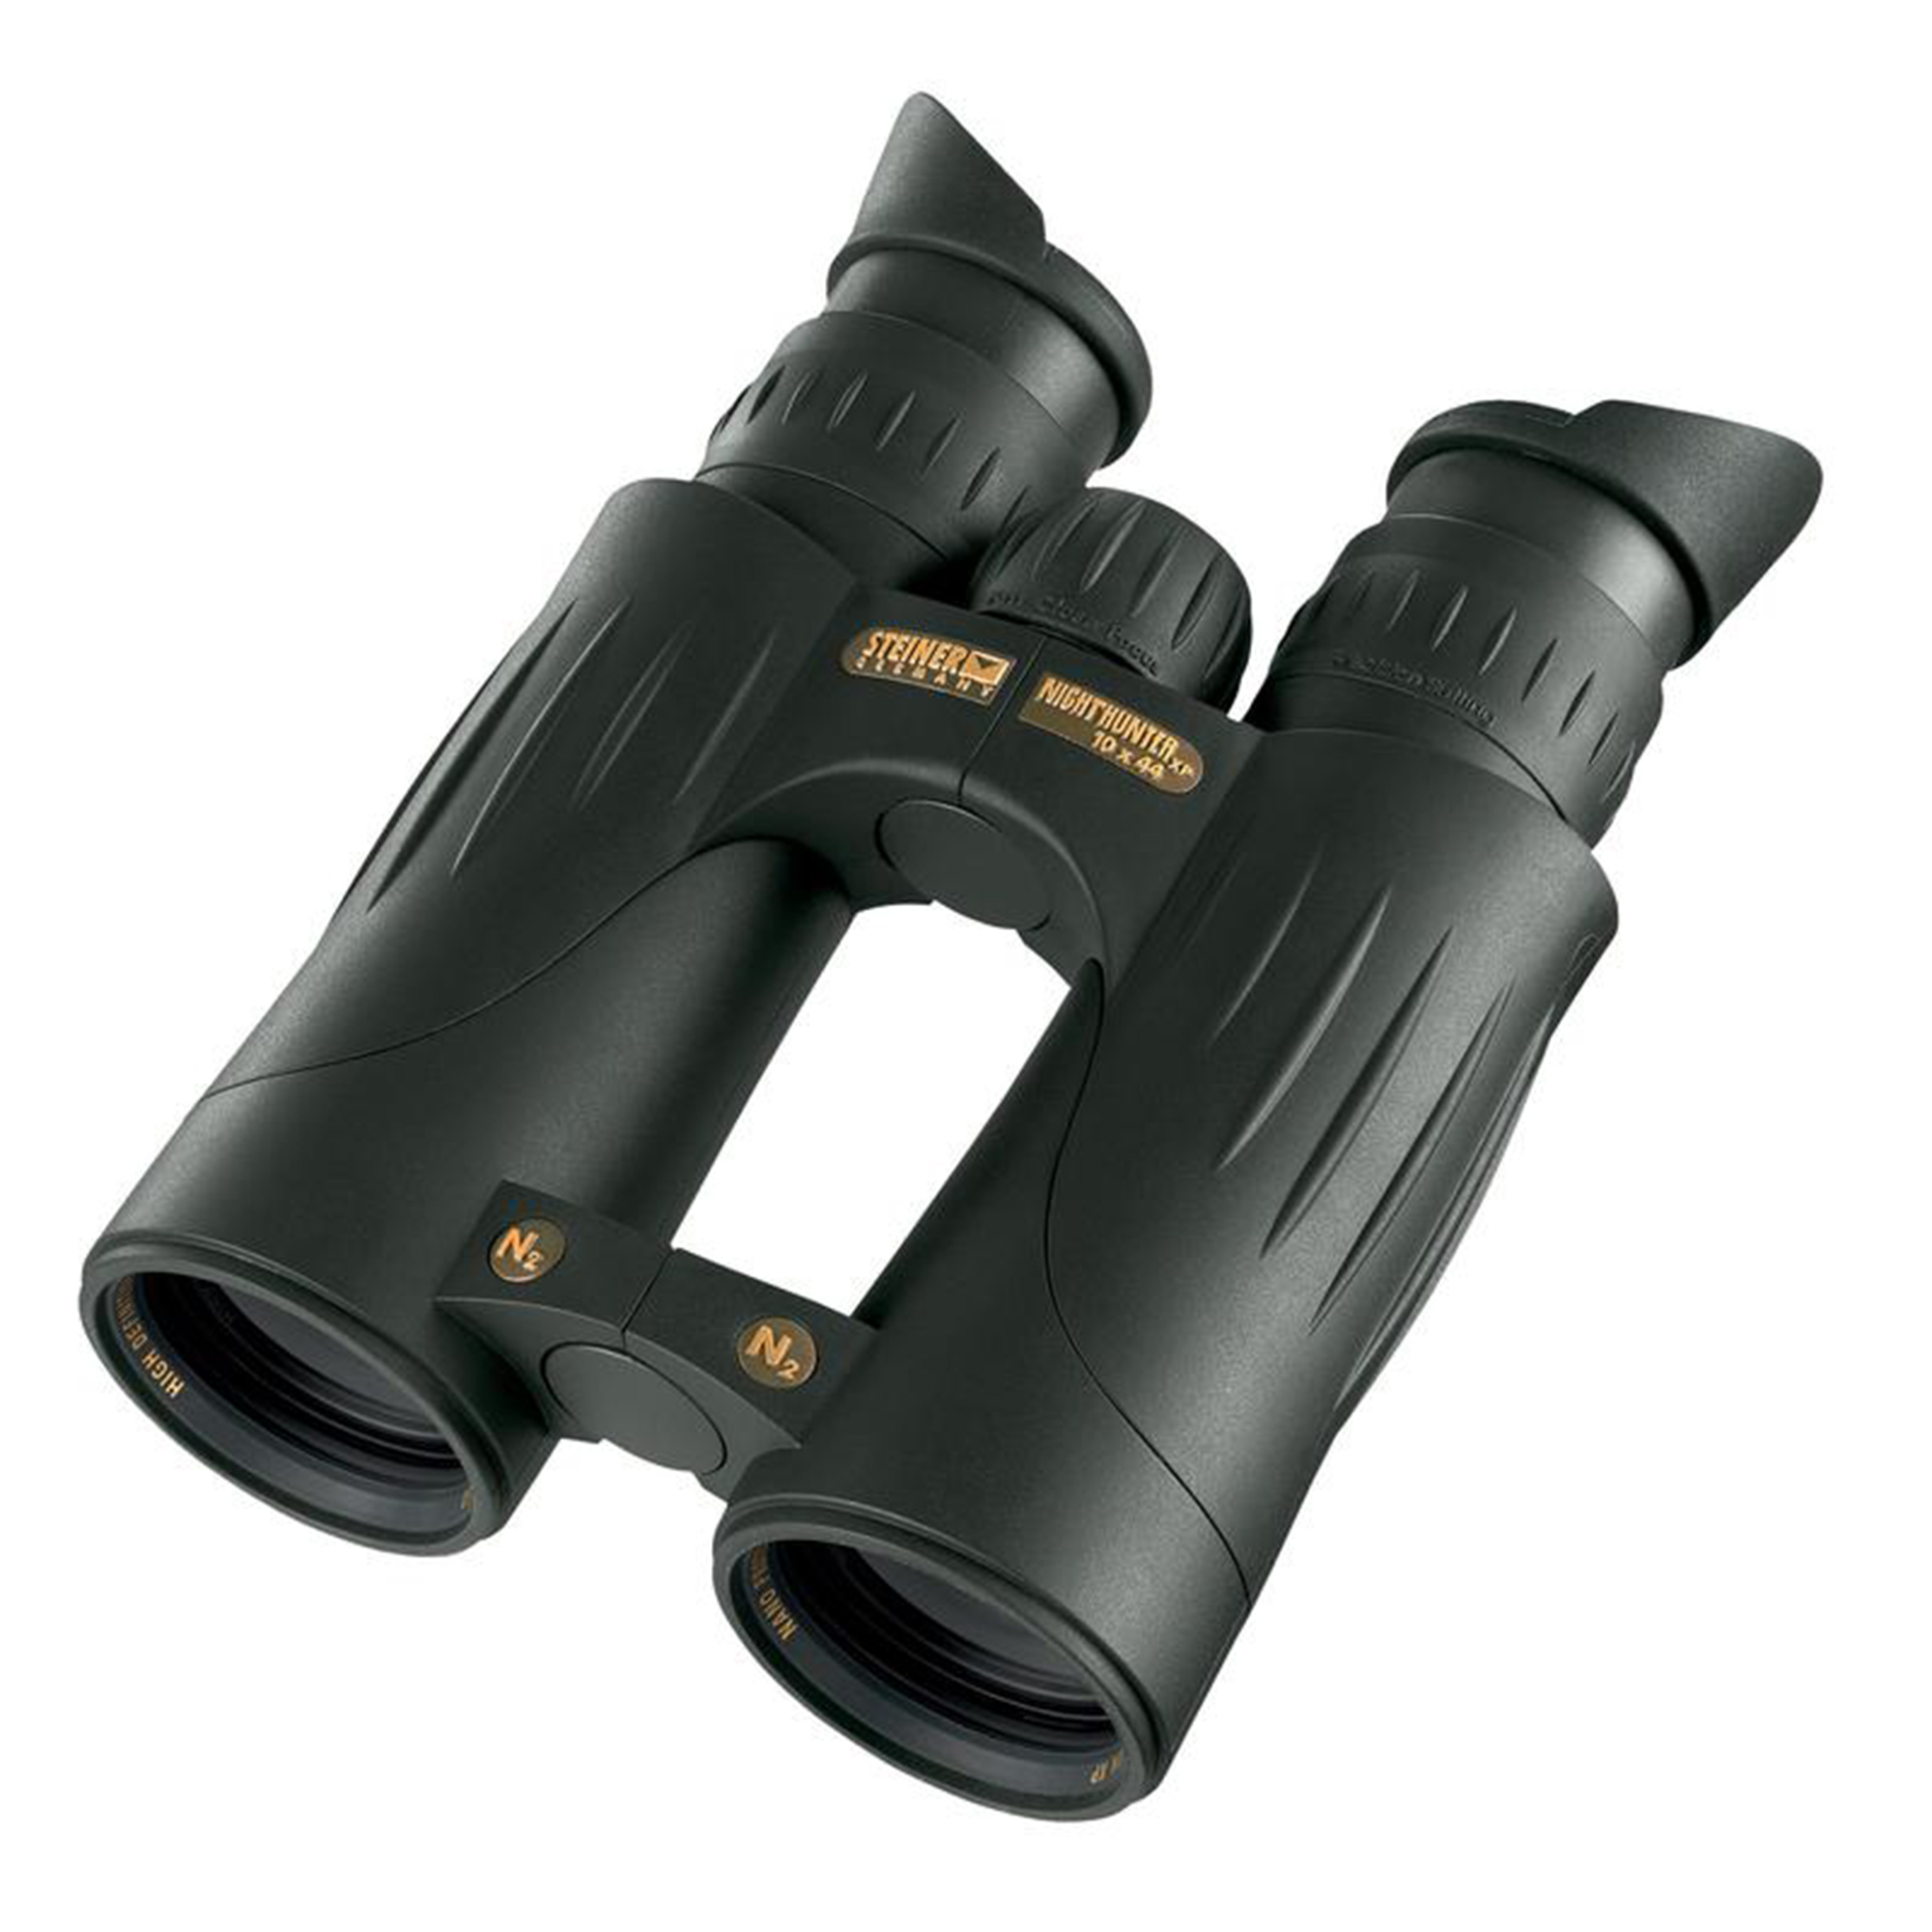 Steiner Nighthunter XP 10x44 Binocular